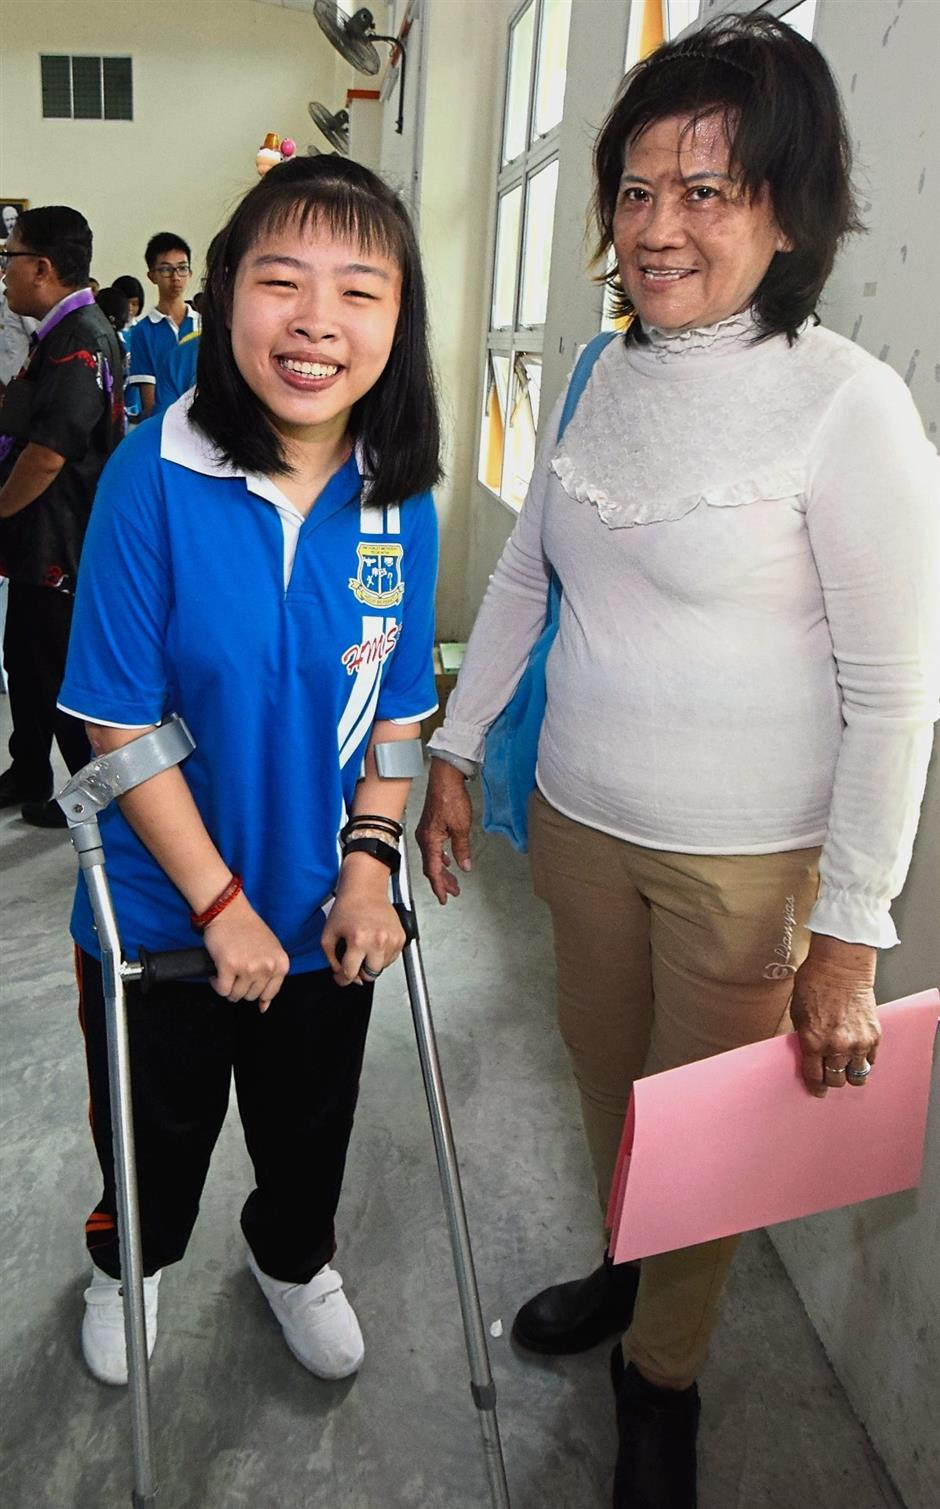 A beaming Pei Xuan (left) and her grandmother Chay were both overjoyed with her good SPM results.